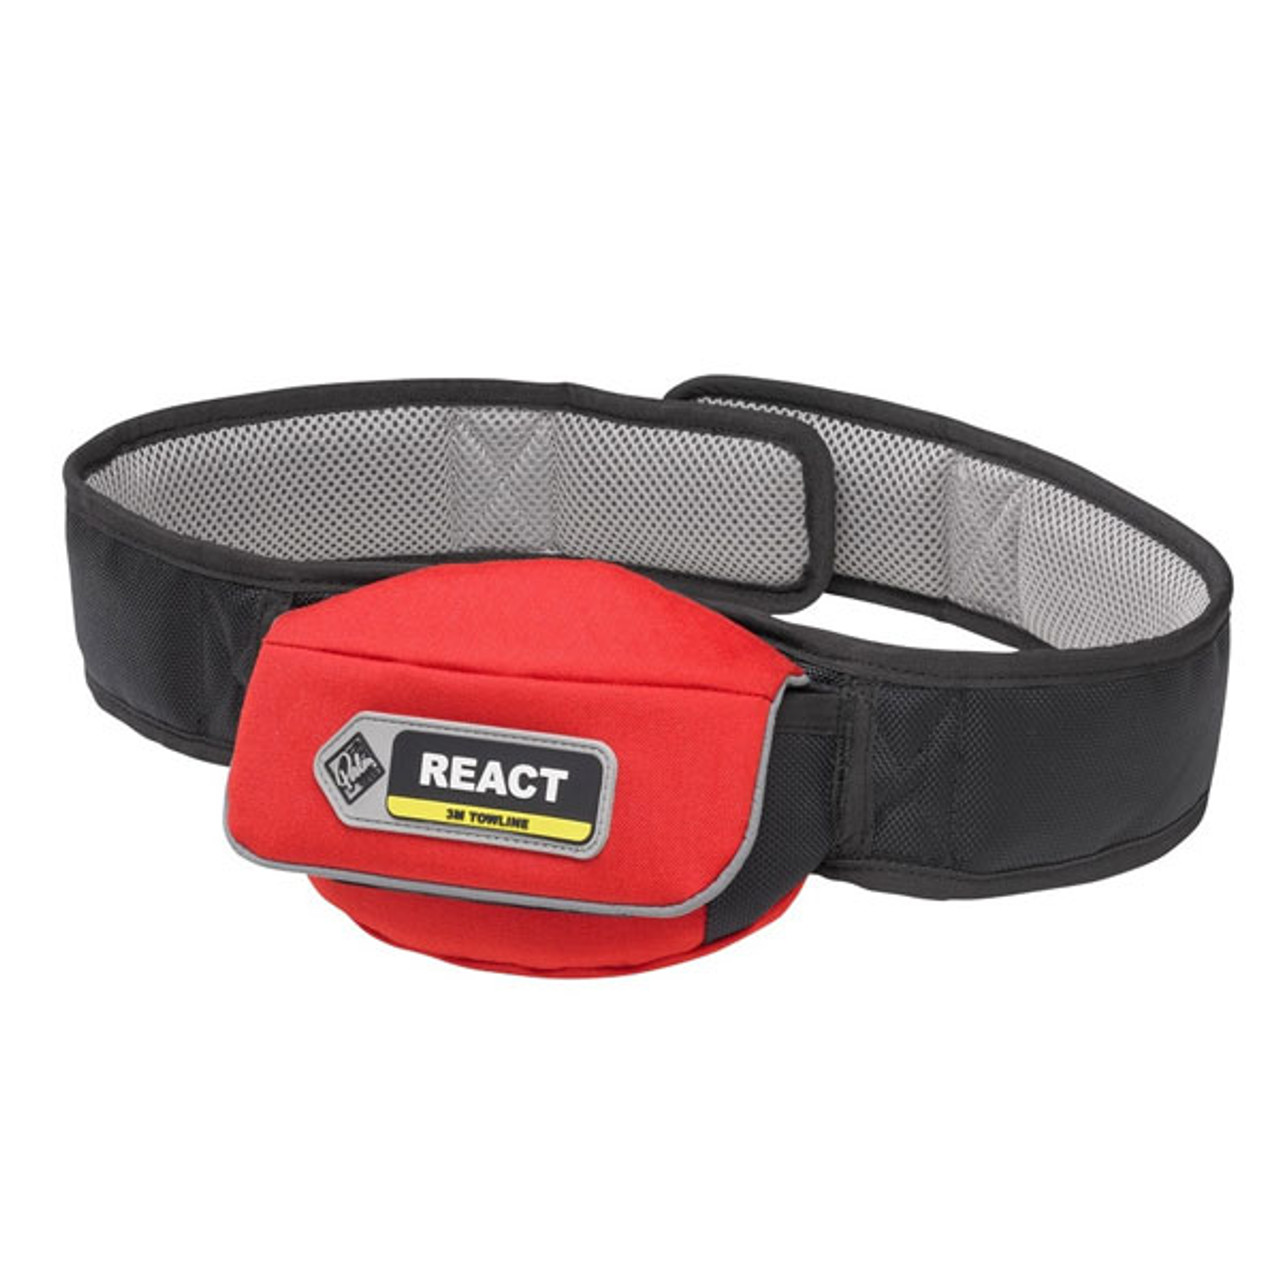 Kayak Watersports Palm 5m Safety Tape Brand New Ideal for Canoe